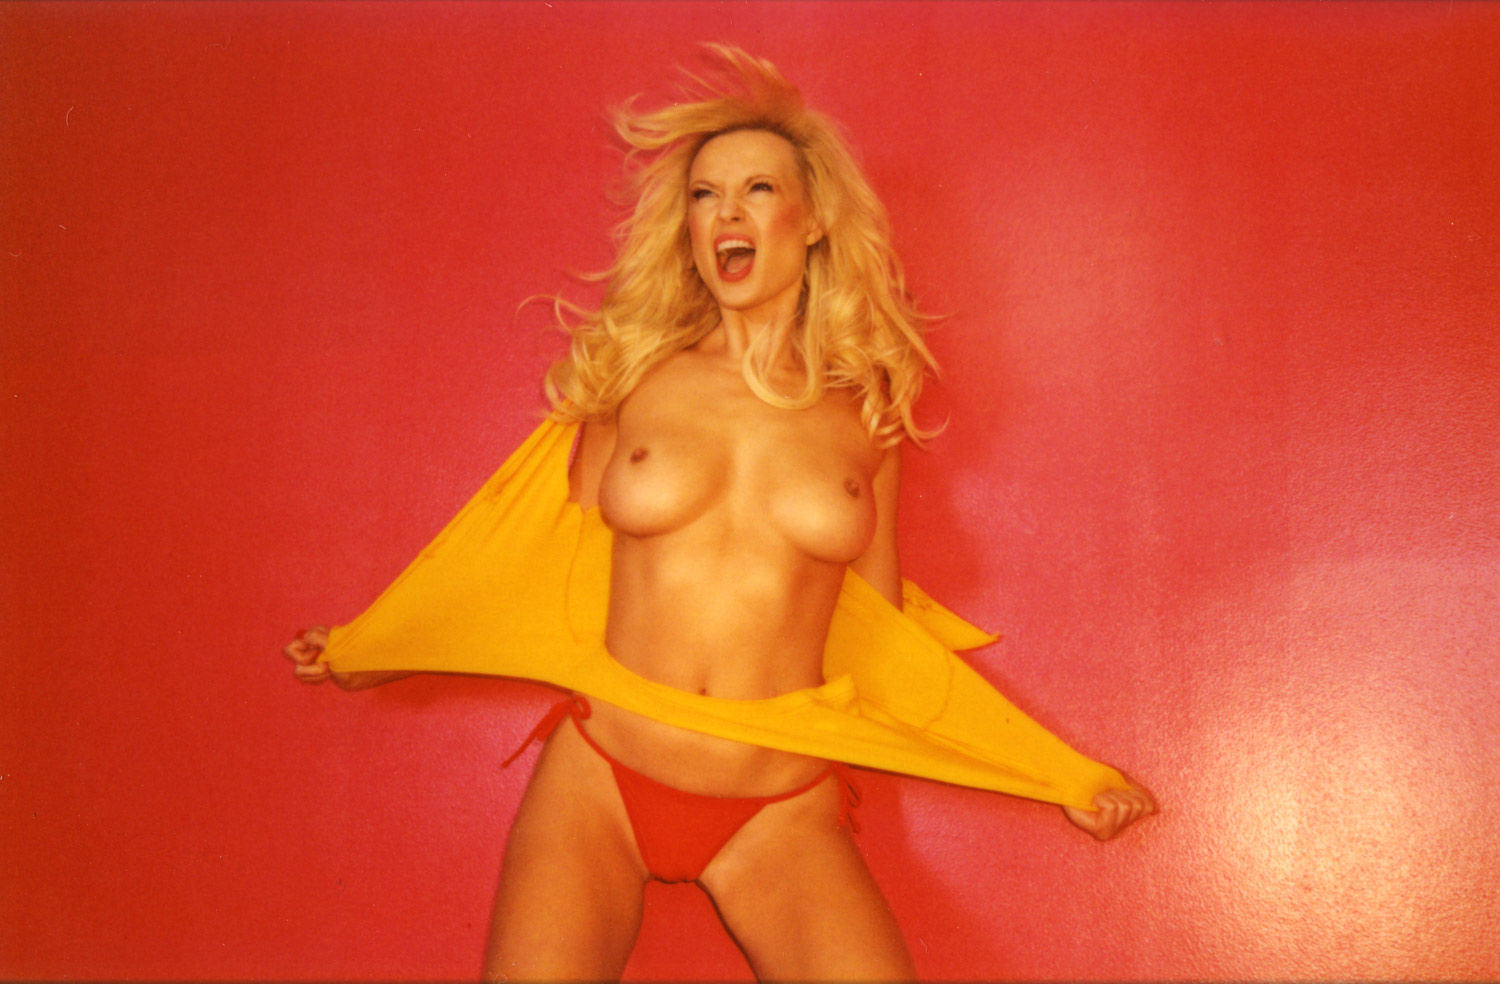 PLAYBOYPOLA003s2sq.jpg